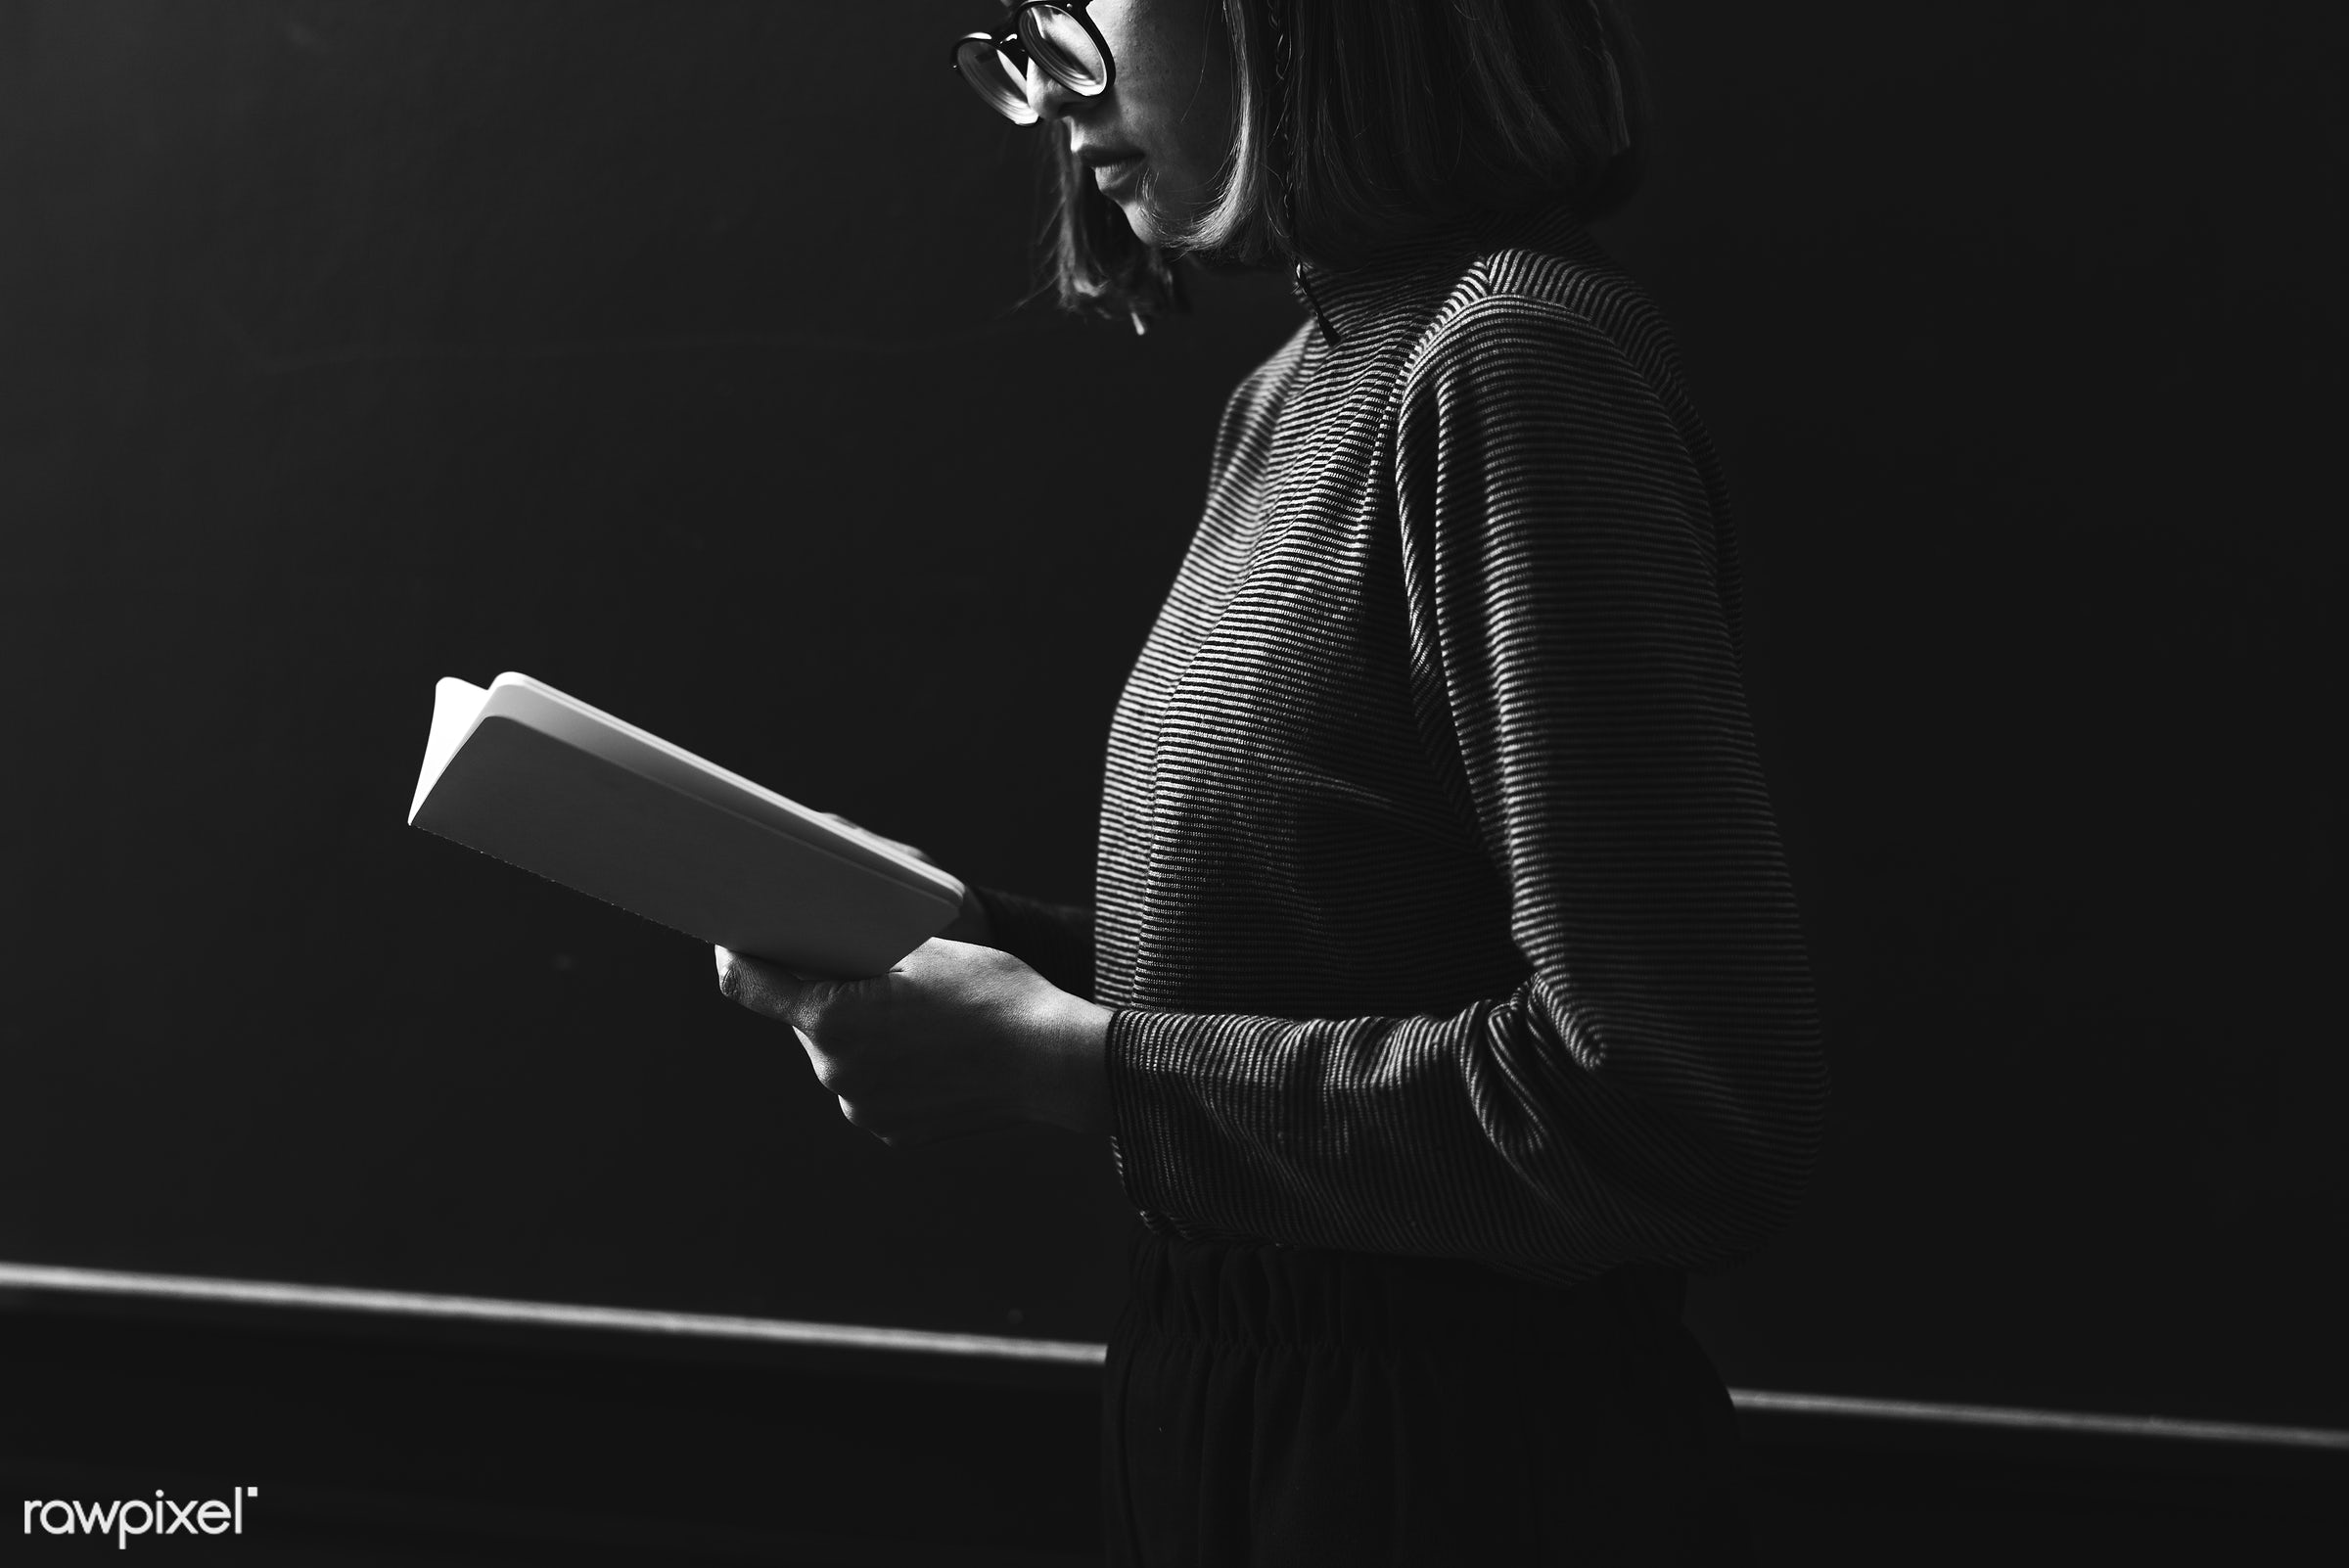 Grayscale girl reading a book - woman, girl, grayscale, reading, book, alone, dark, glasses, solitude, hobbies